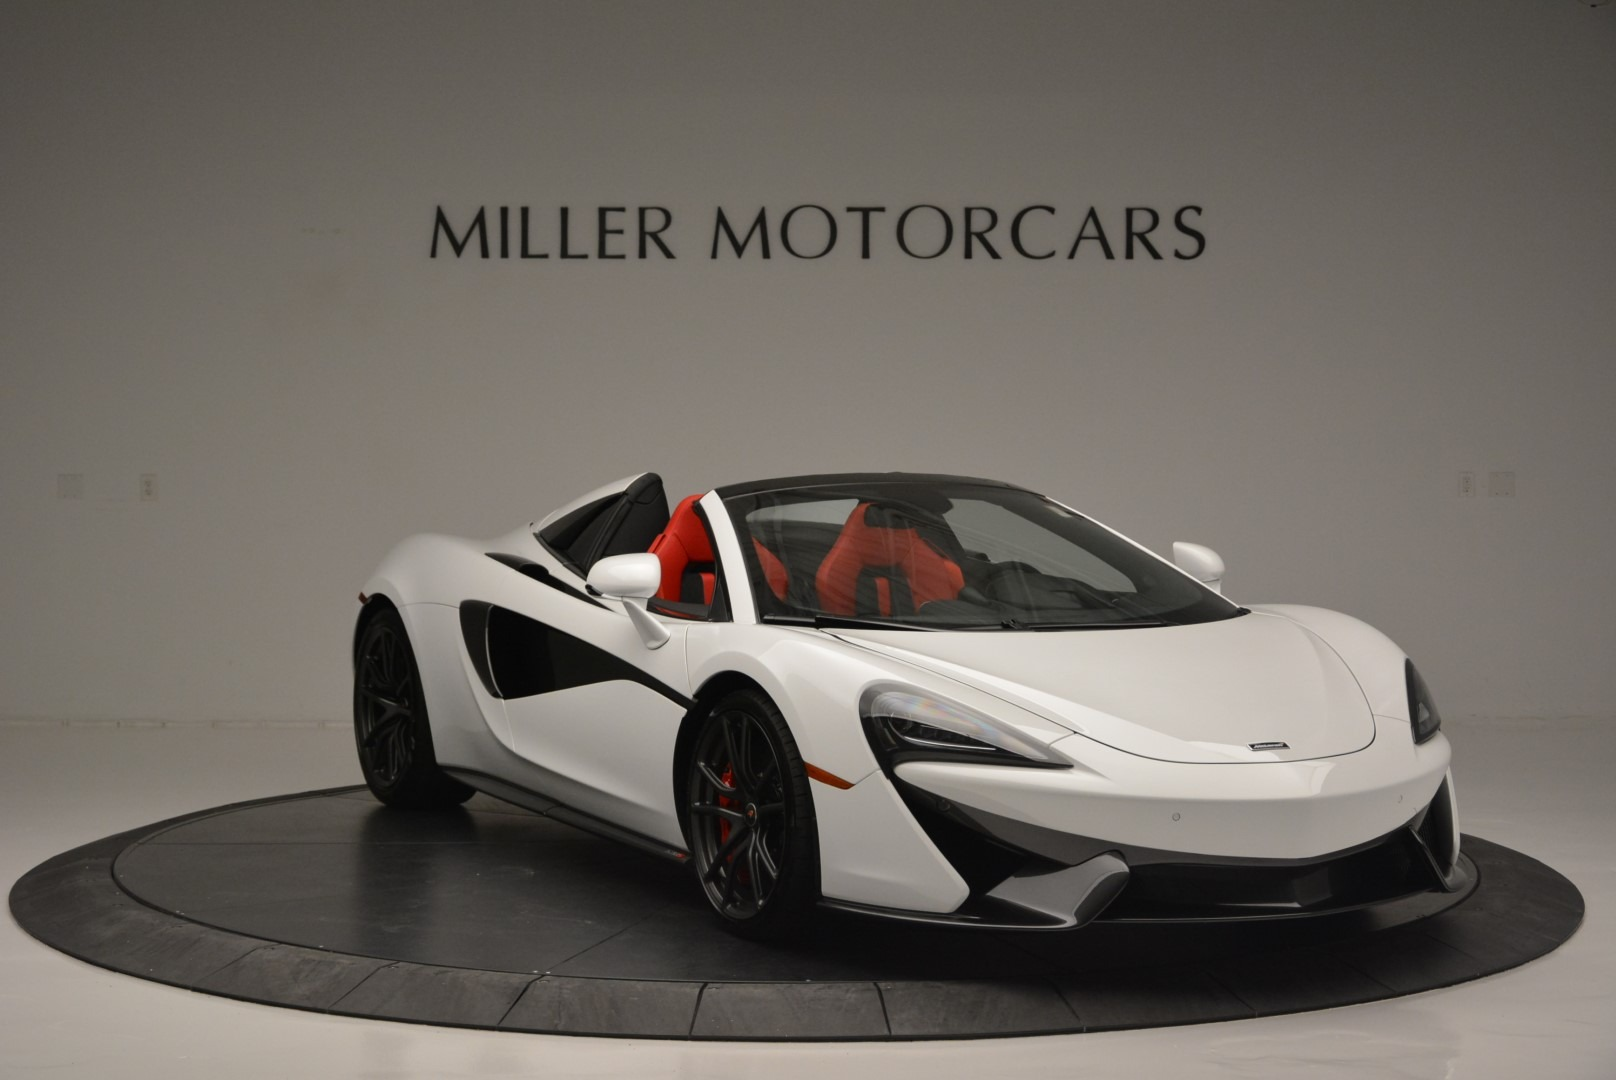 Used 2018 McLaren 570S Spider For Sale In Greenwich, CT. Alfa Romeo of Greenwich, 3149 2341_p11